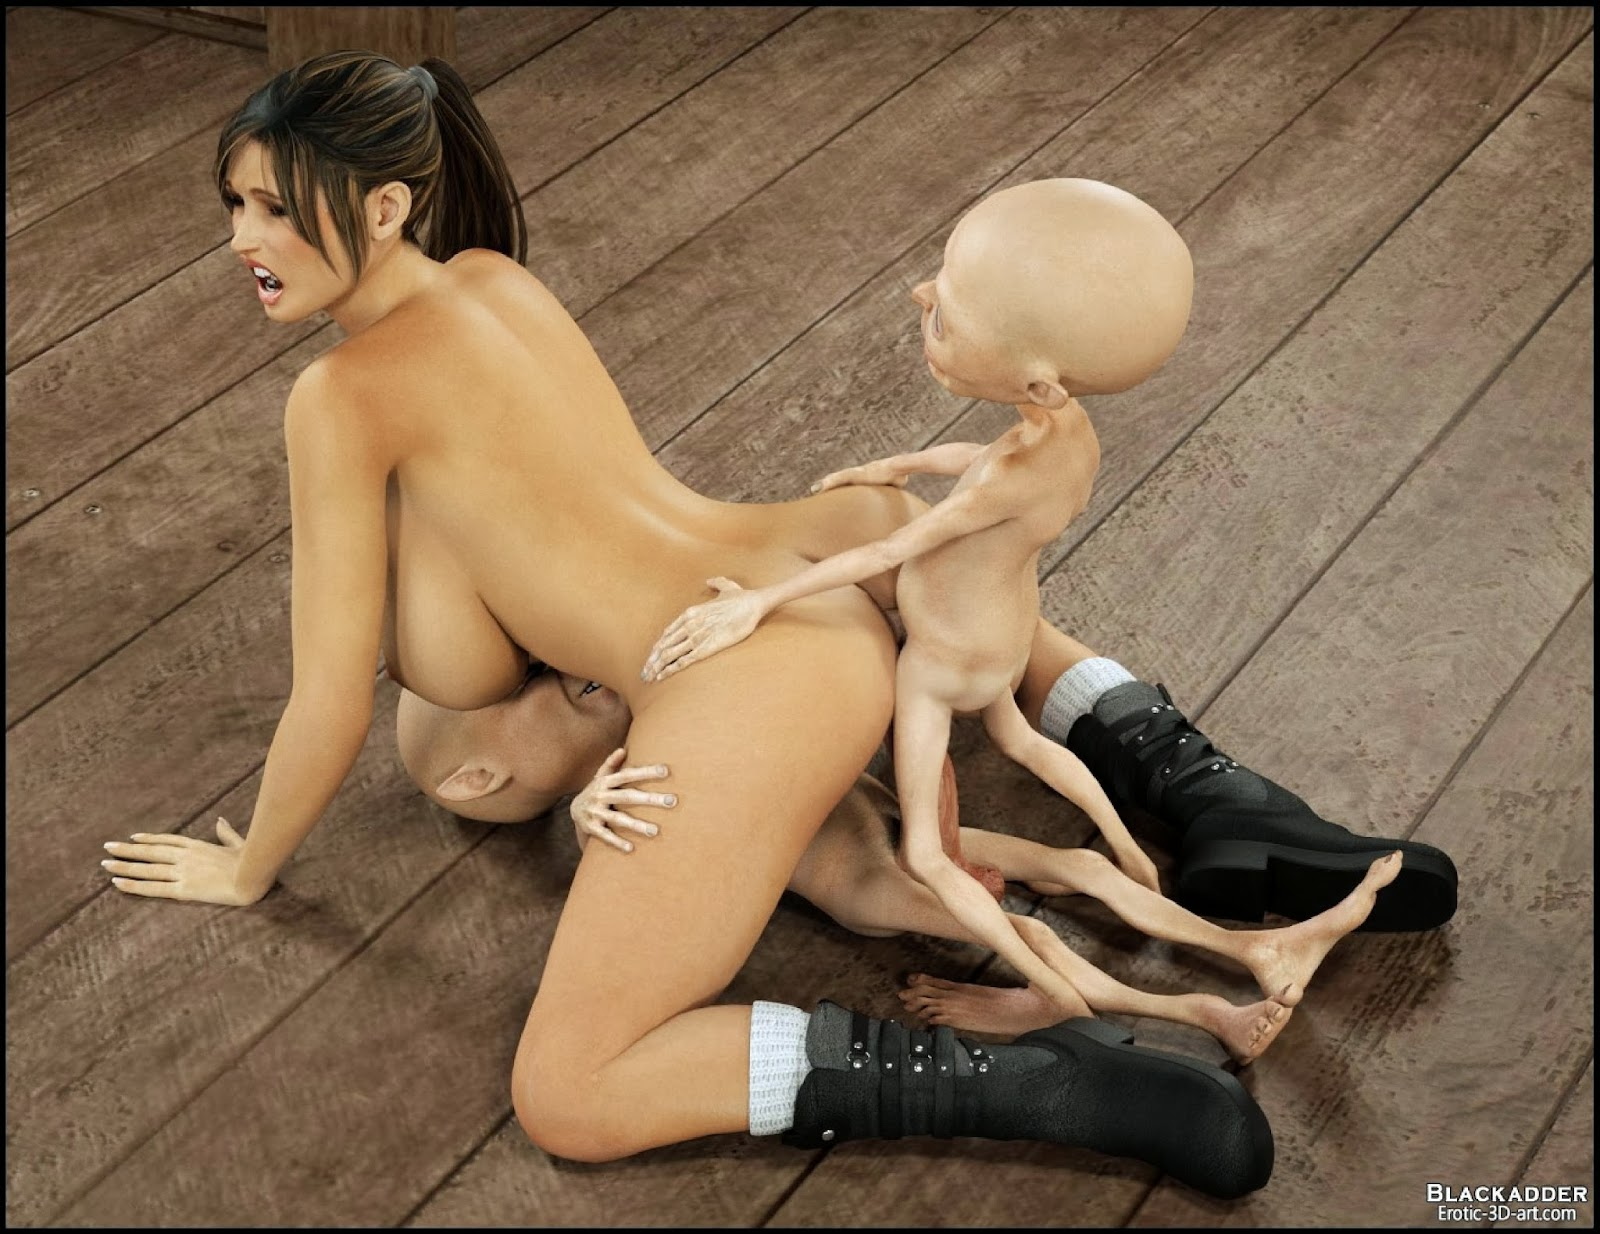 Animation 3d porn lara croft movie monster smut pics